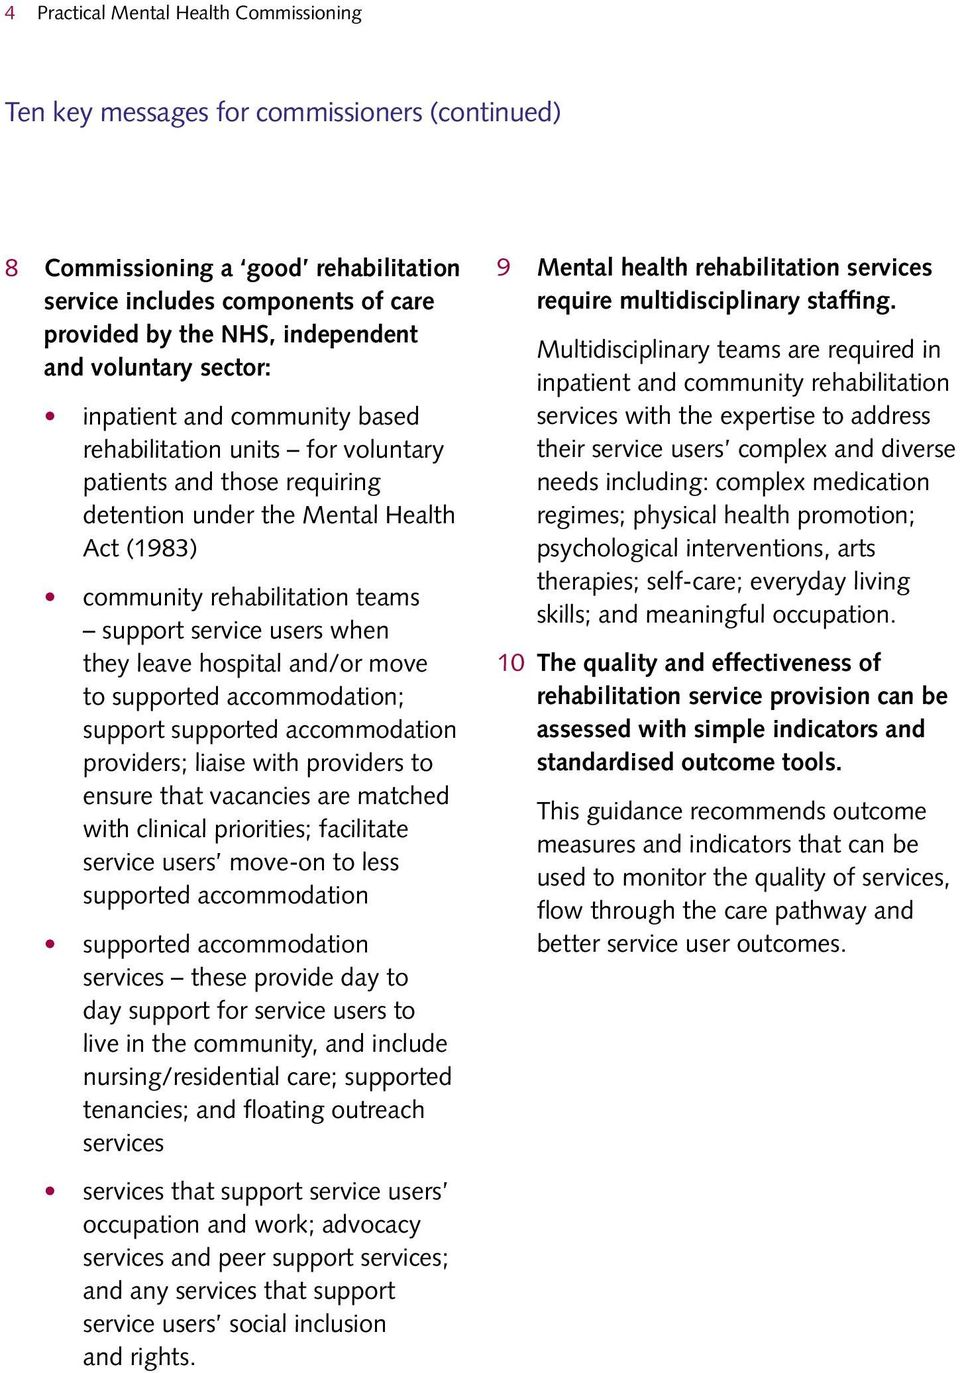 service users when they leave hospital and/or move to supported accommodation; support supported accommodation providers; liaise with providers to ensure that vacancies are matched with clinical